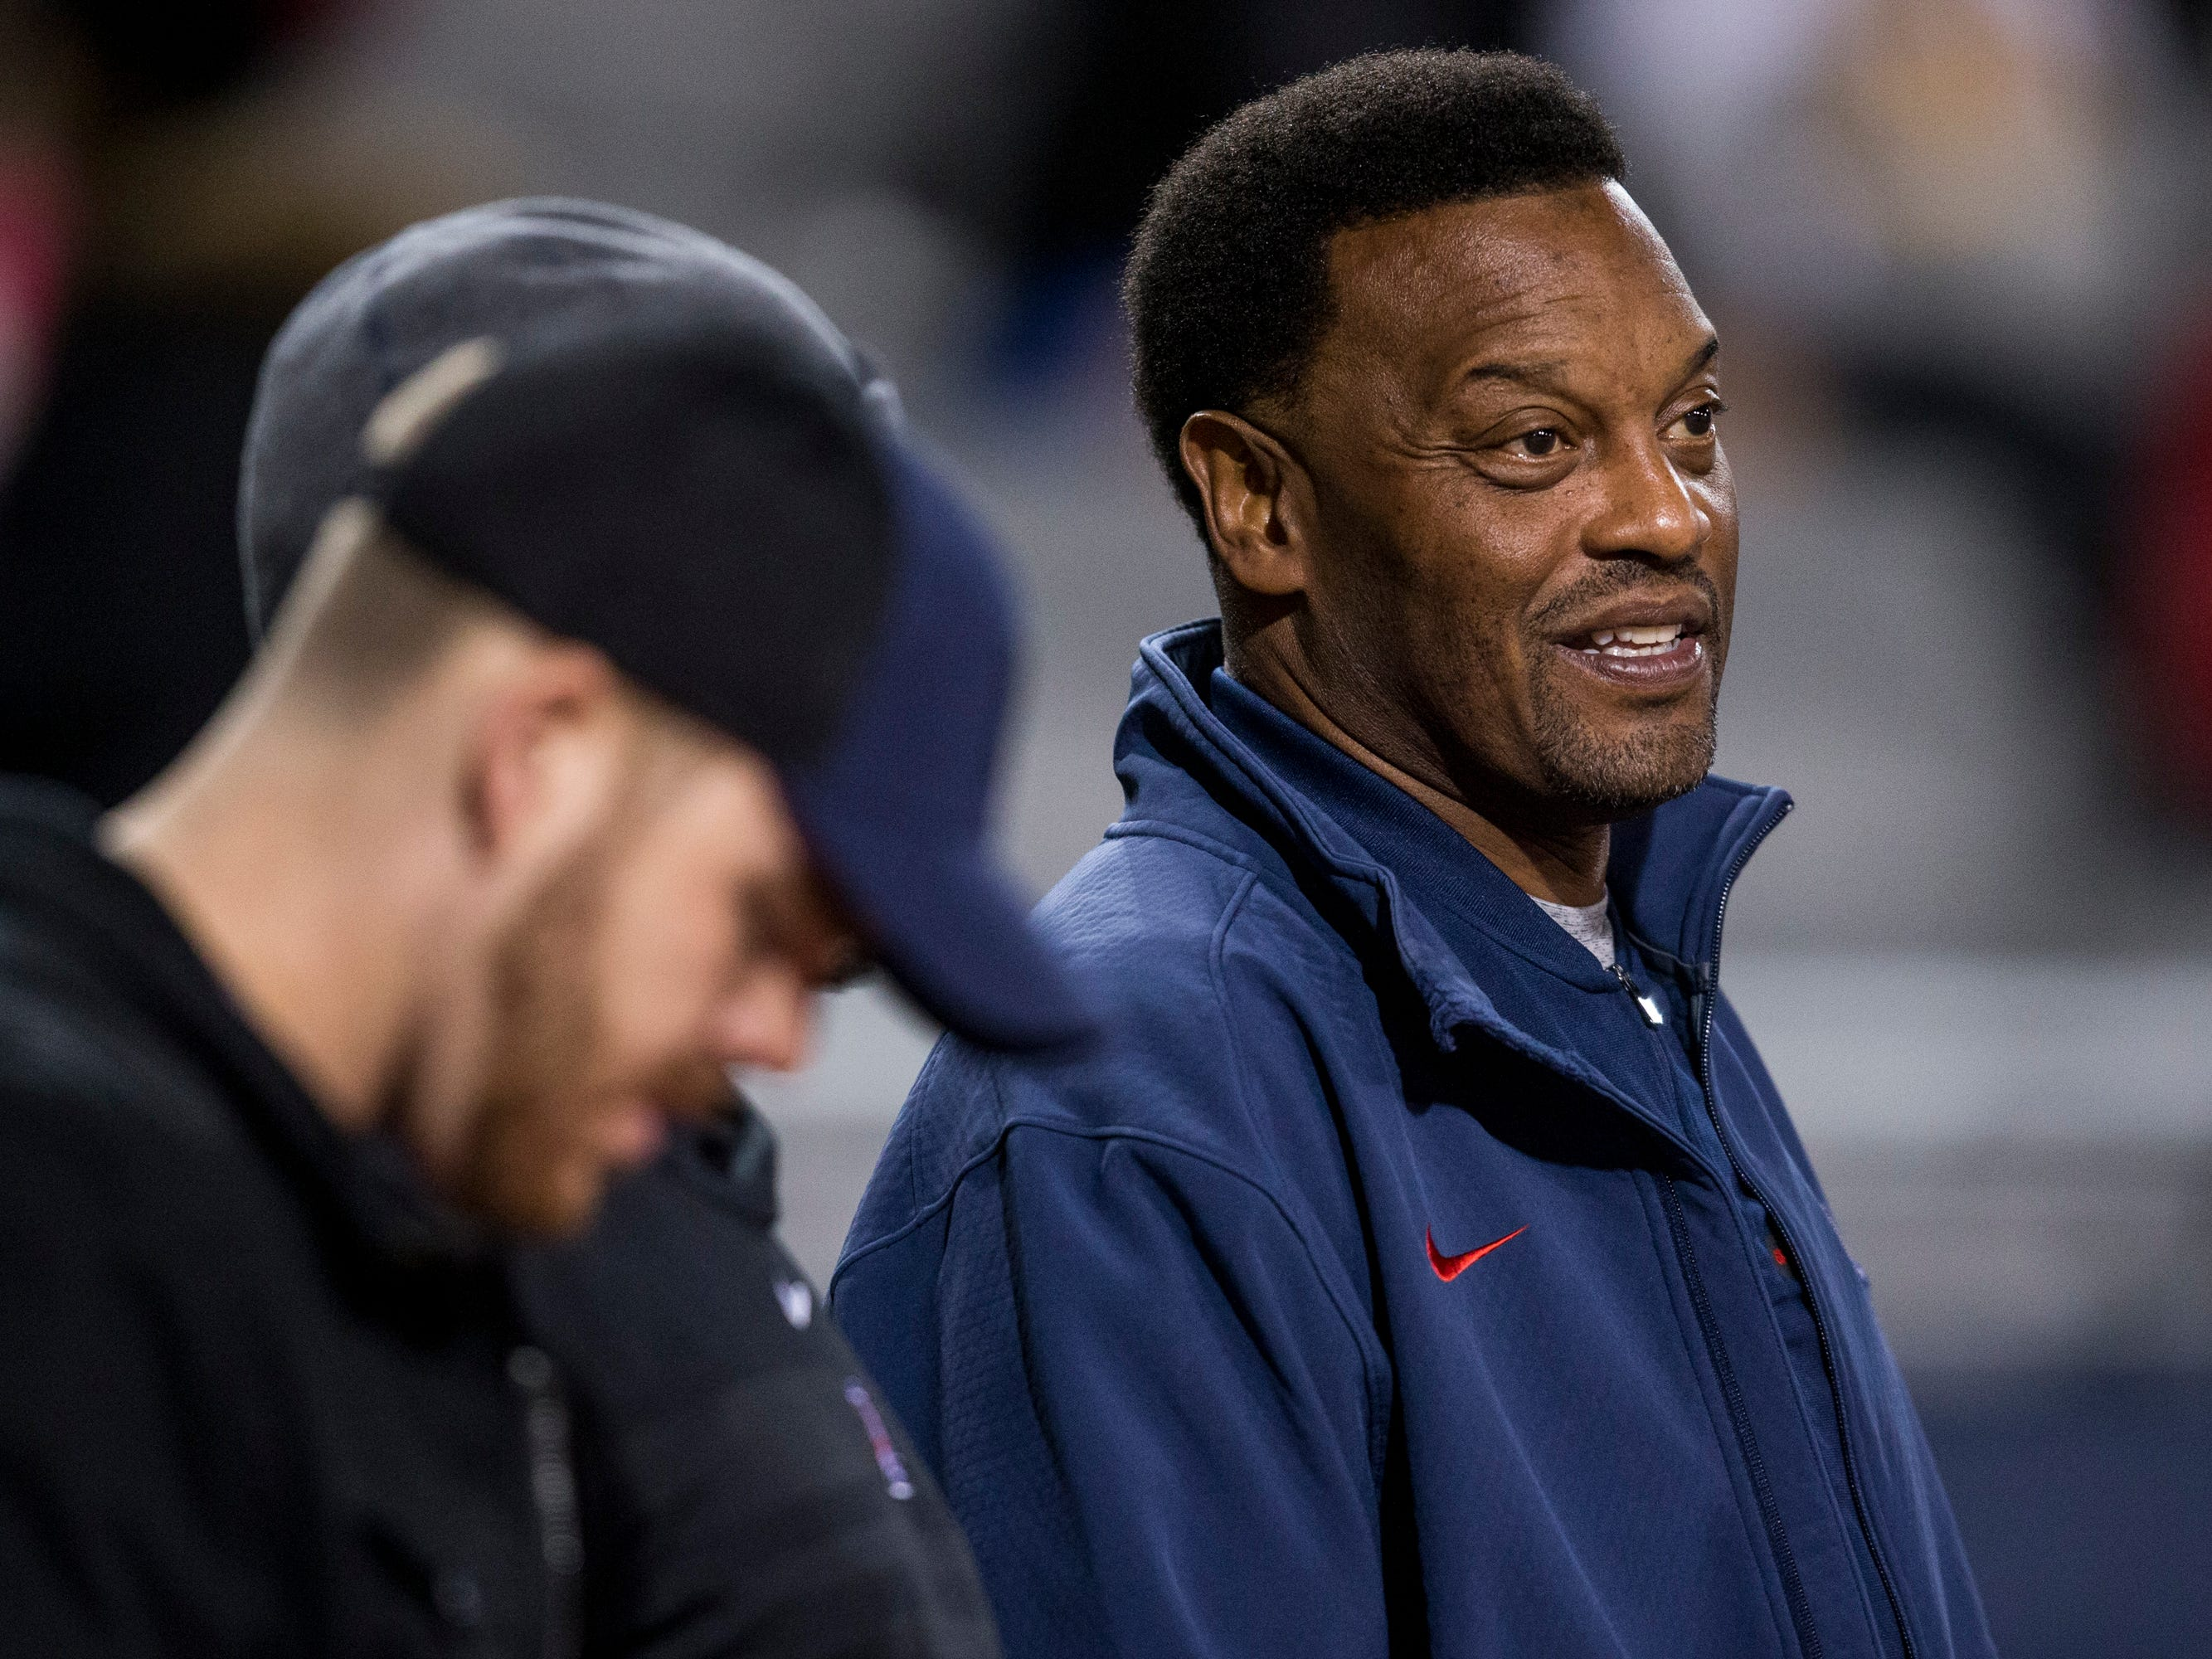 Arizona head coach Kevin Sumlin watches the 4A State Championship between Salpointe and Saguaro on Friday, Nov. 30, 2018, at Arizona Stadium in Tucson, Ariz. 